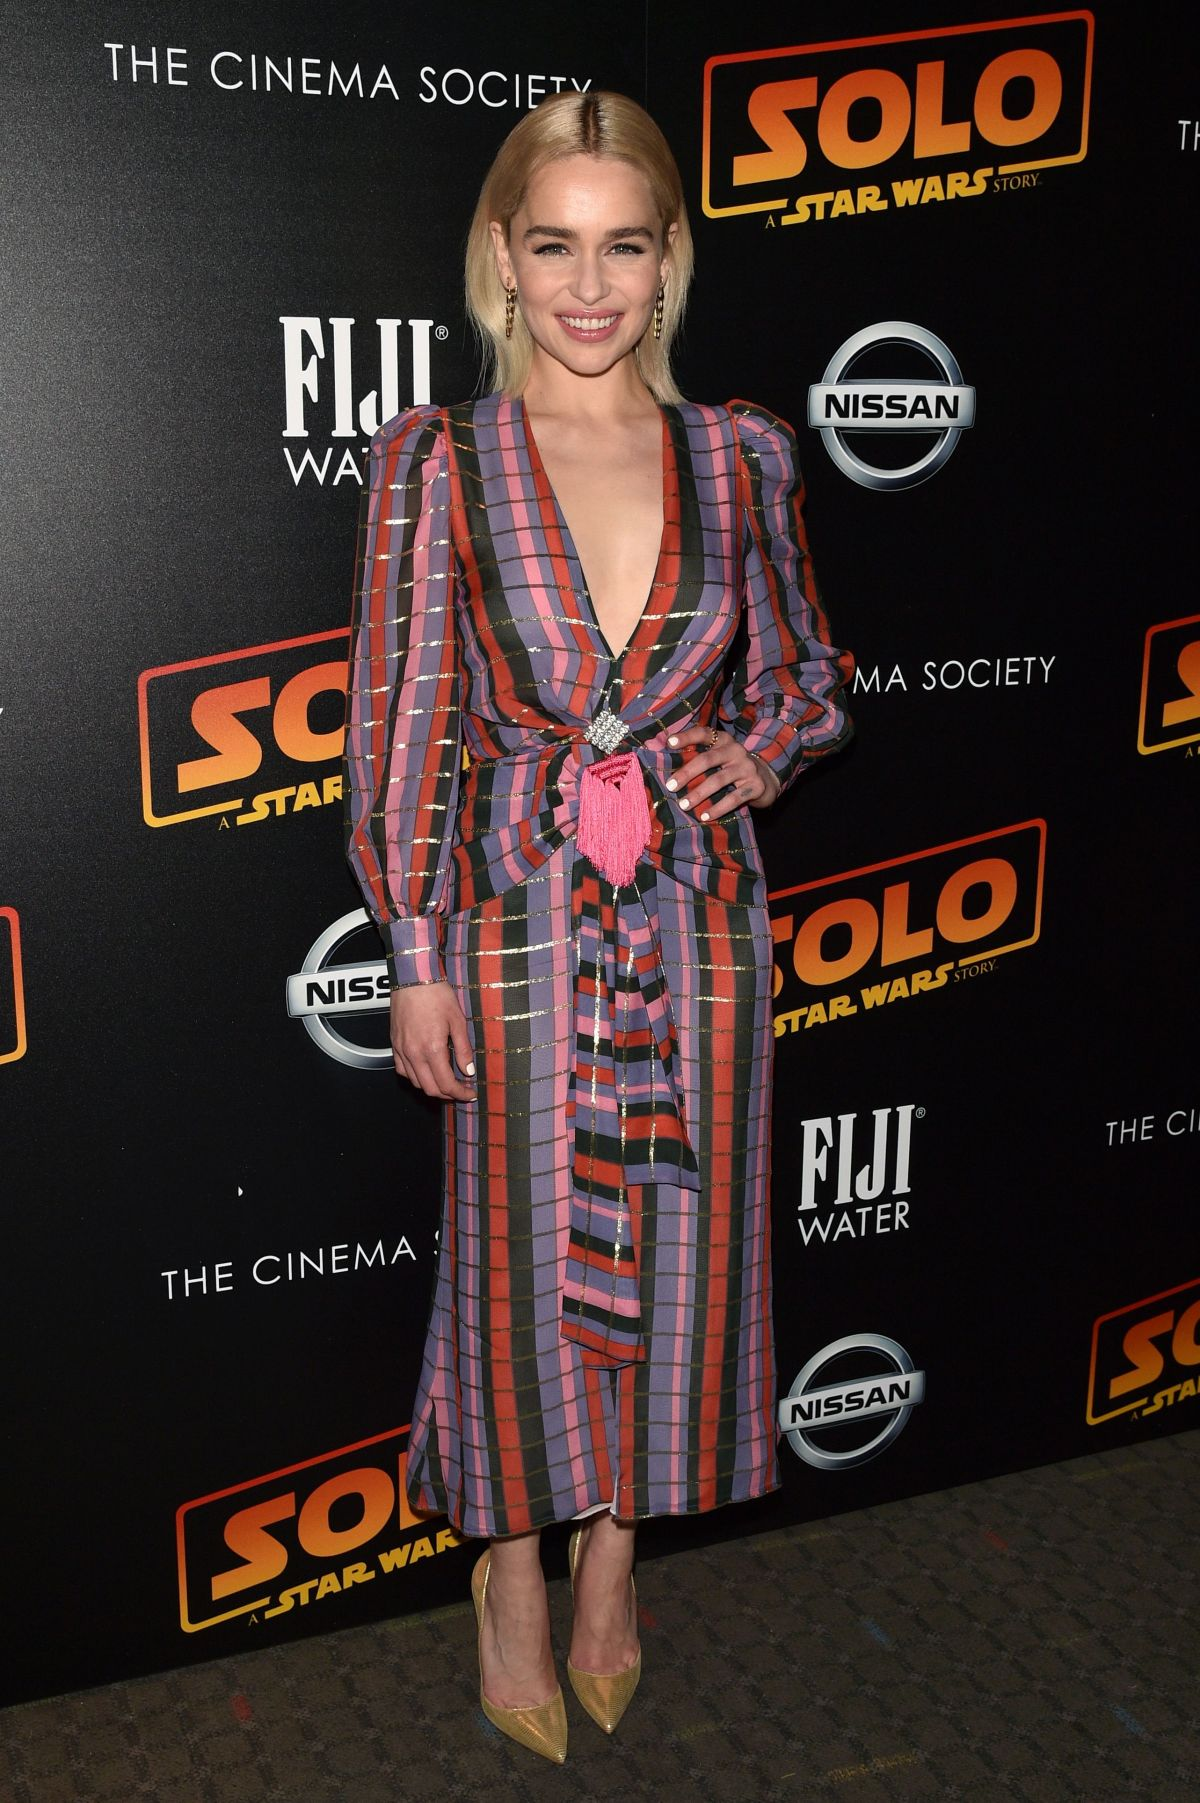 Emilia Clarke At 'Solo: A Star Wars Story' film premiere